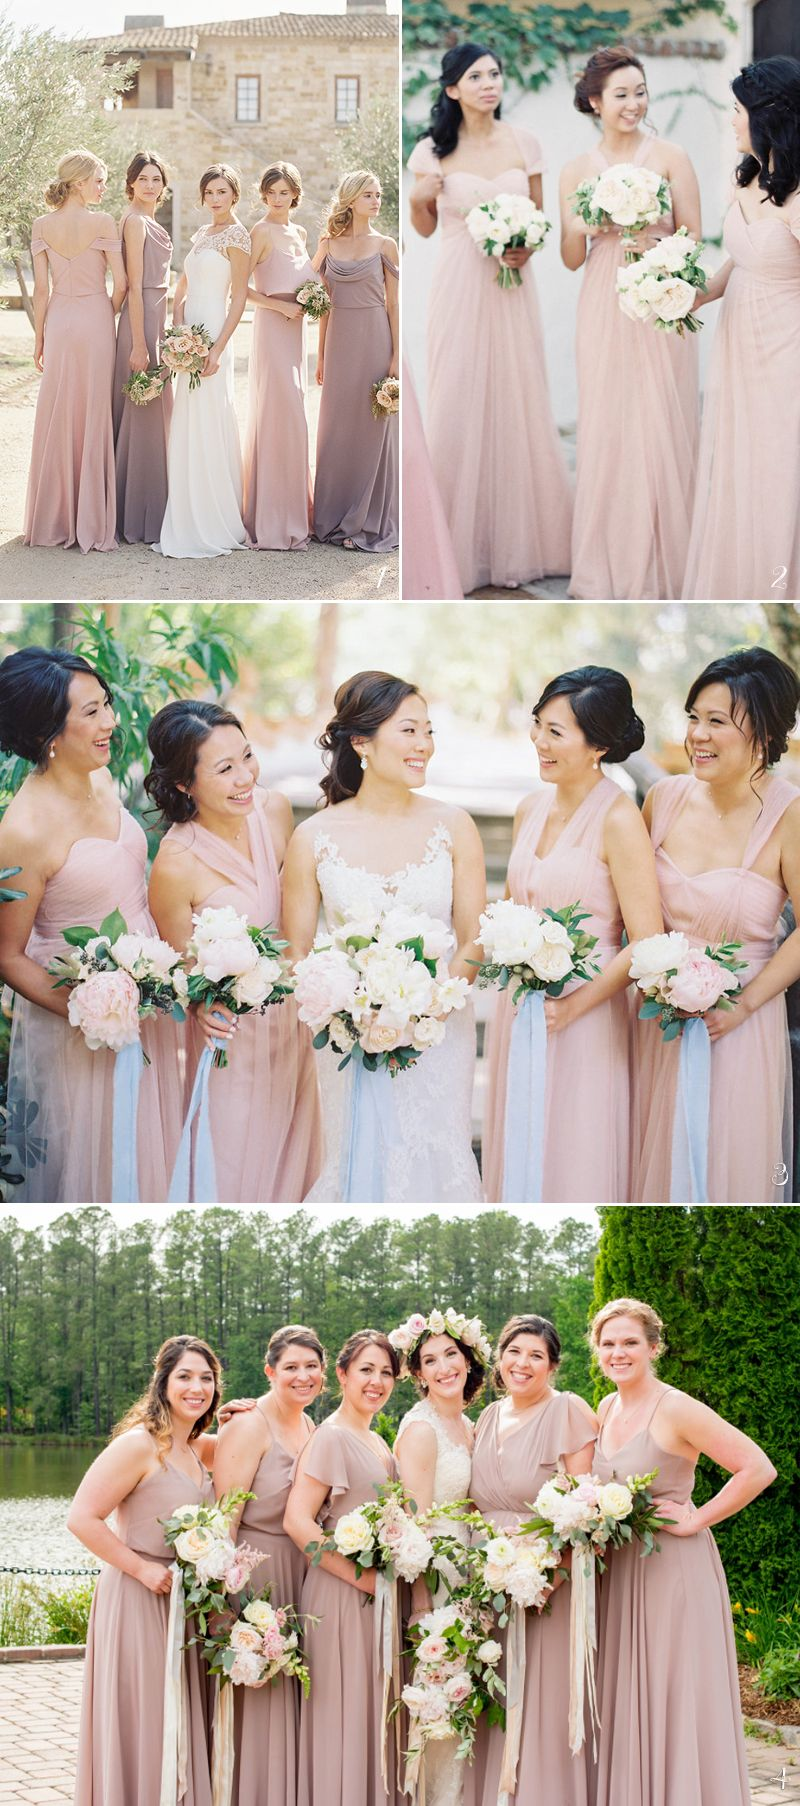 Trend Report 5 Best Bridesmaid Dress Colors For Spring 2018 Neutral Bridesmaid Dresses Summer Bridesmaid Dresses Bridesmaid Colors [ 1806 x 800 Pixel ]